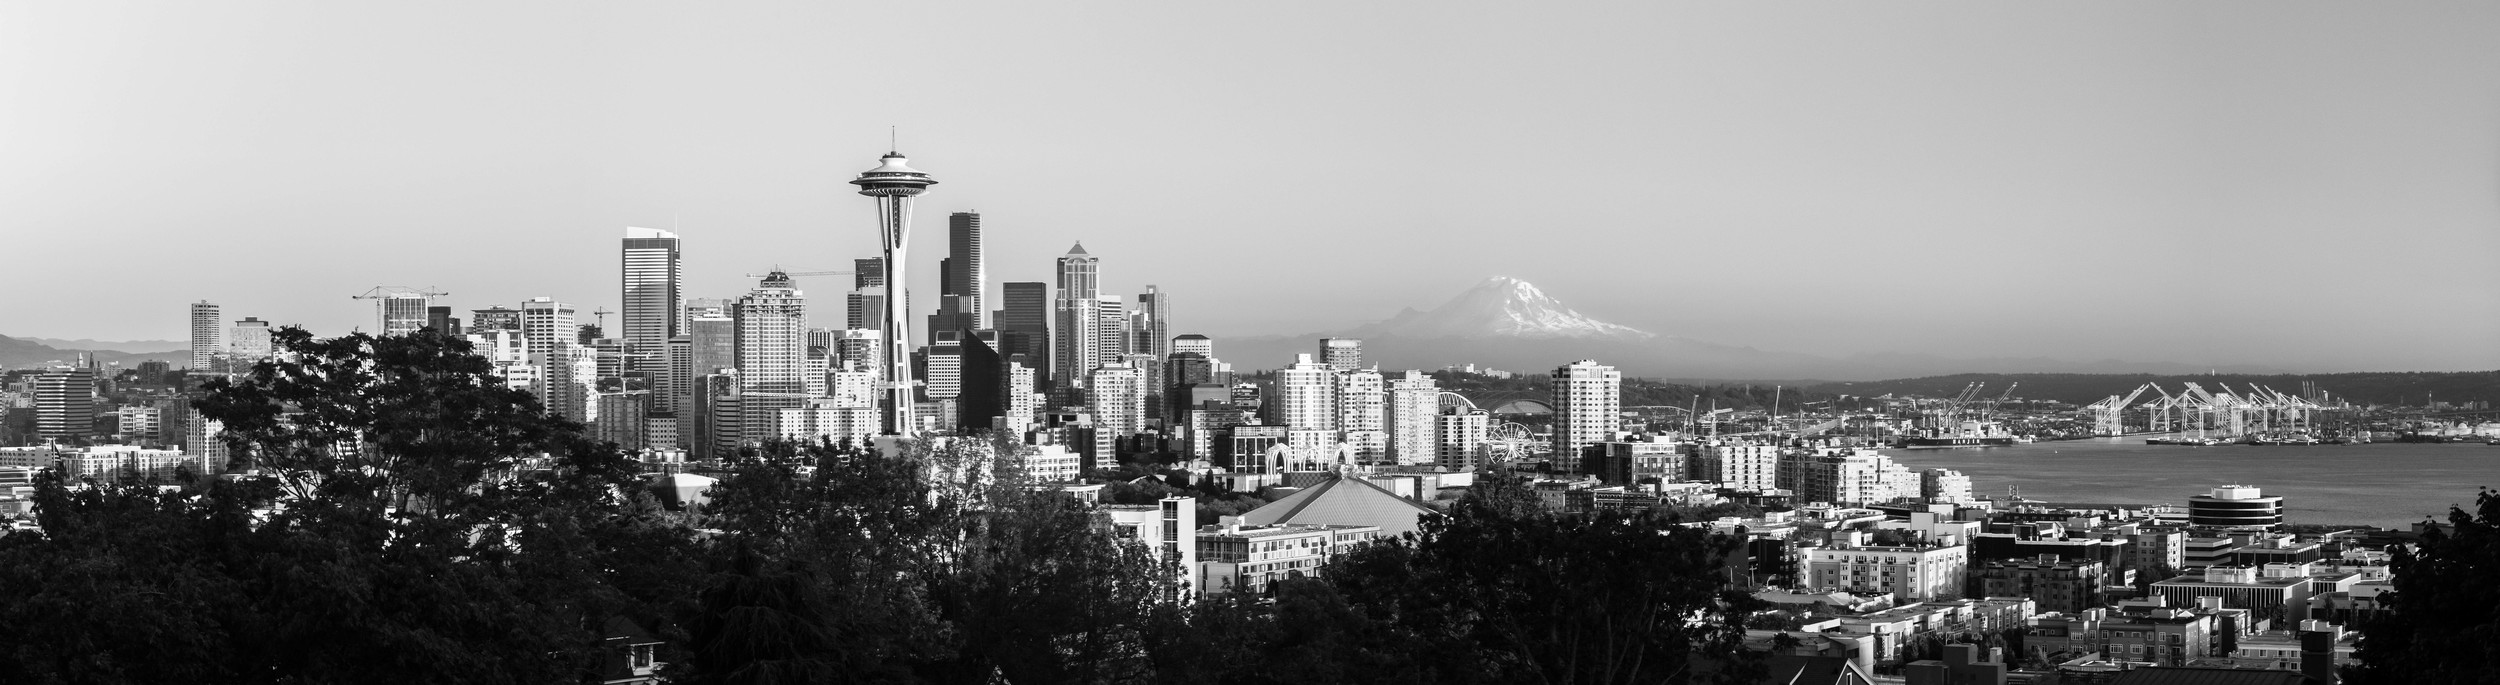 The AV was set to 11 to put the sharpest focus on the city but leaving enough focus on the foreground and background to enjoy Mt Rainier in the distance. If it was a low AV like 2.8 then you would not be able to make out that there was a mountain in the background.